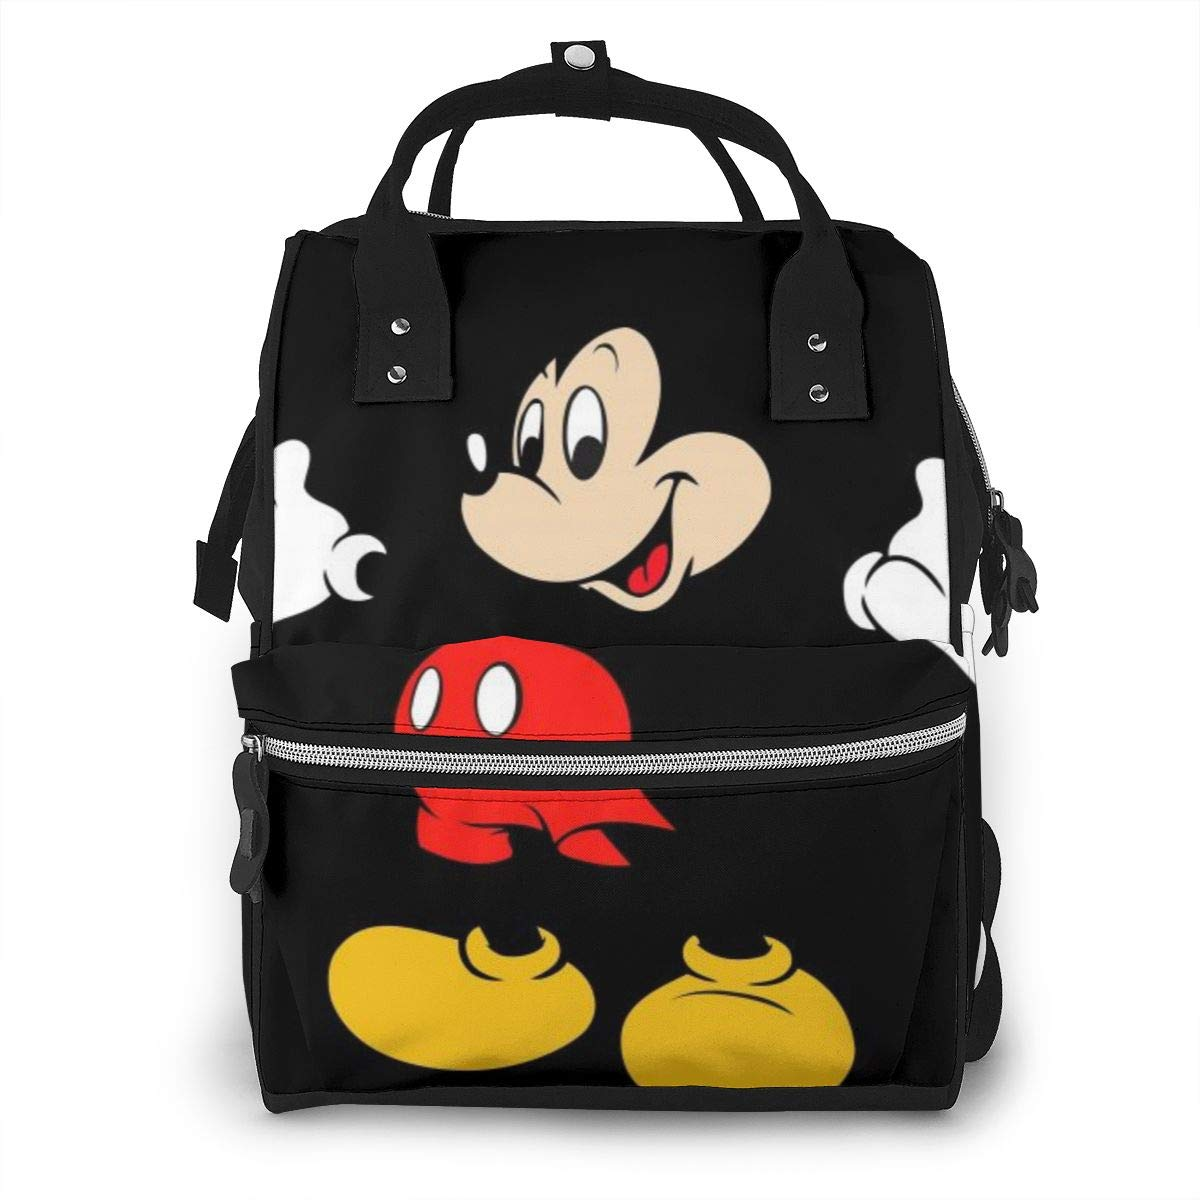 Diaper Bag Backpack - Mickey Mouse Multifunction Waterproof Travel Backpack Maternity Baby Nappy Changing Bags